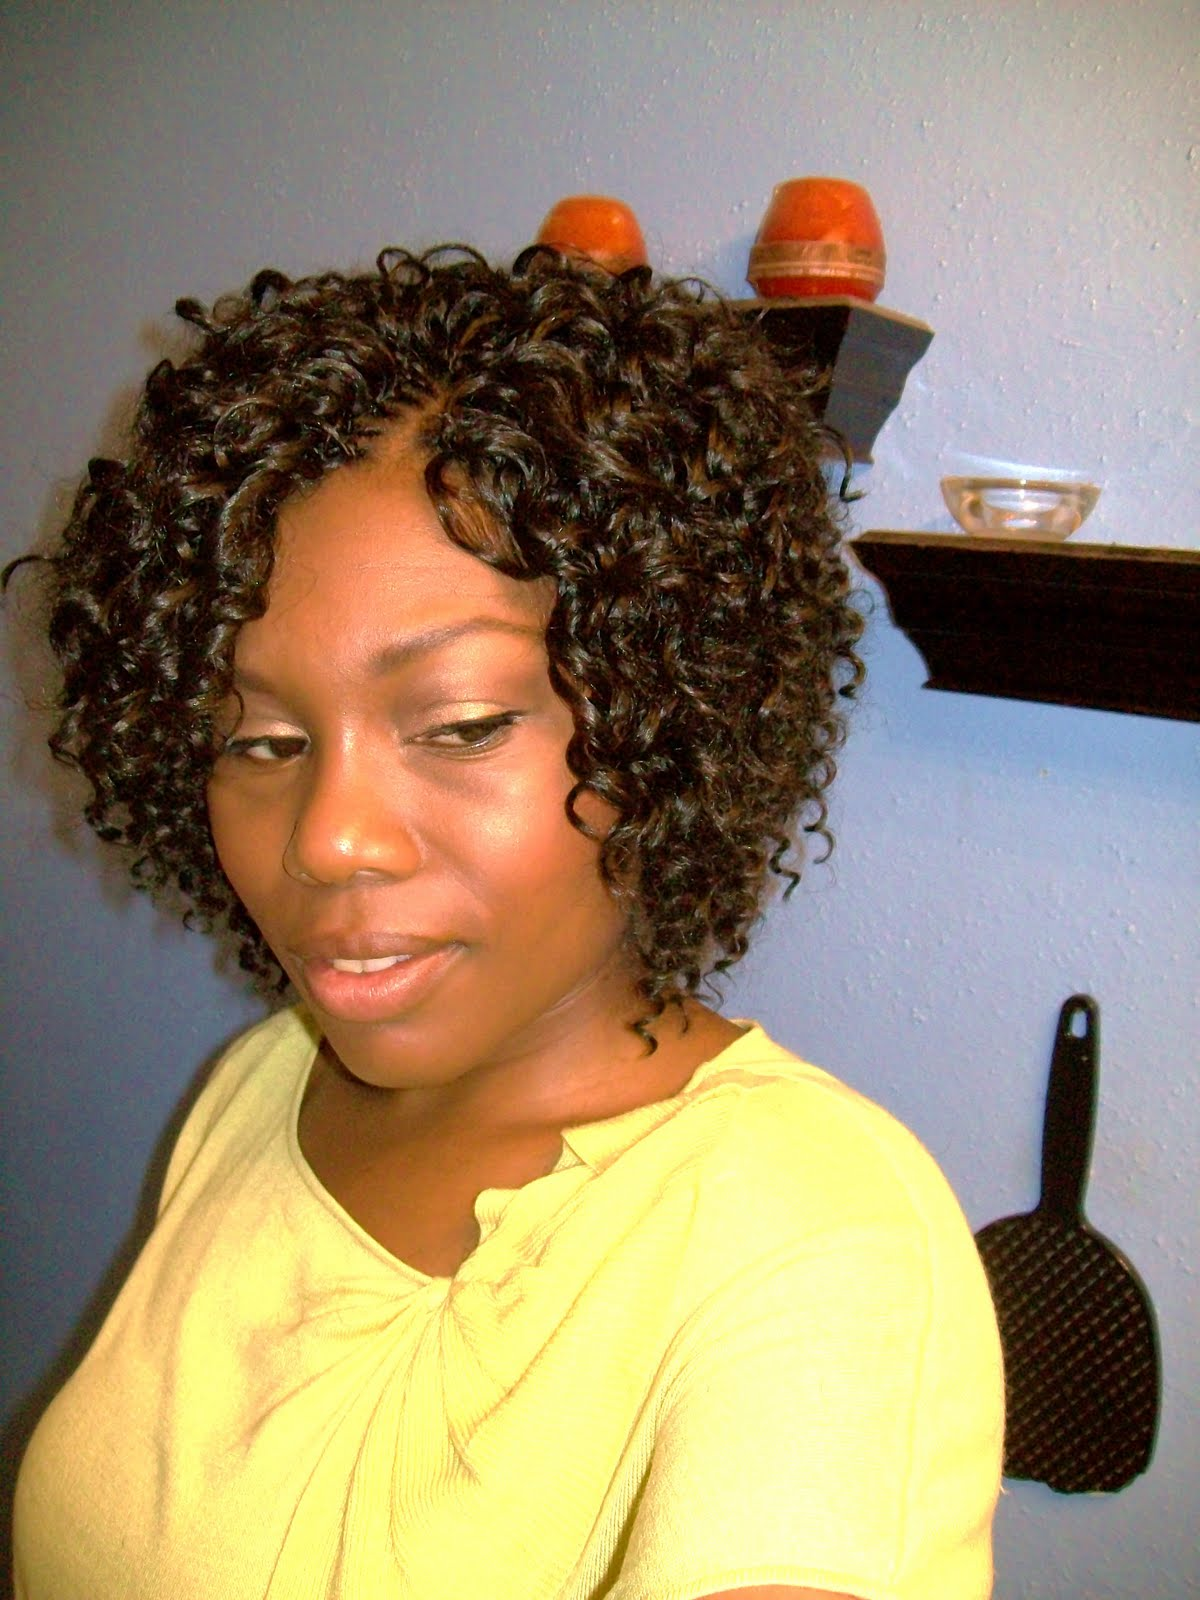 Crochet Braids Care : ... Style is Appropriate? (girl, stylist) - Hair Care - City-Data Forum